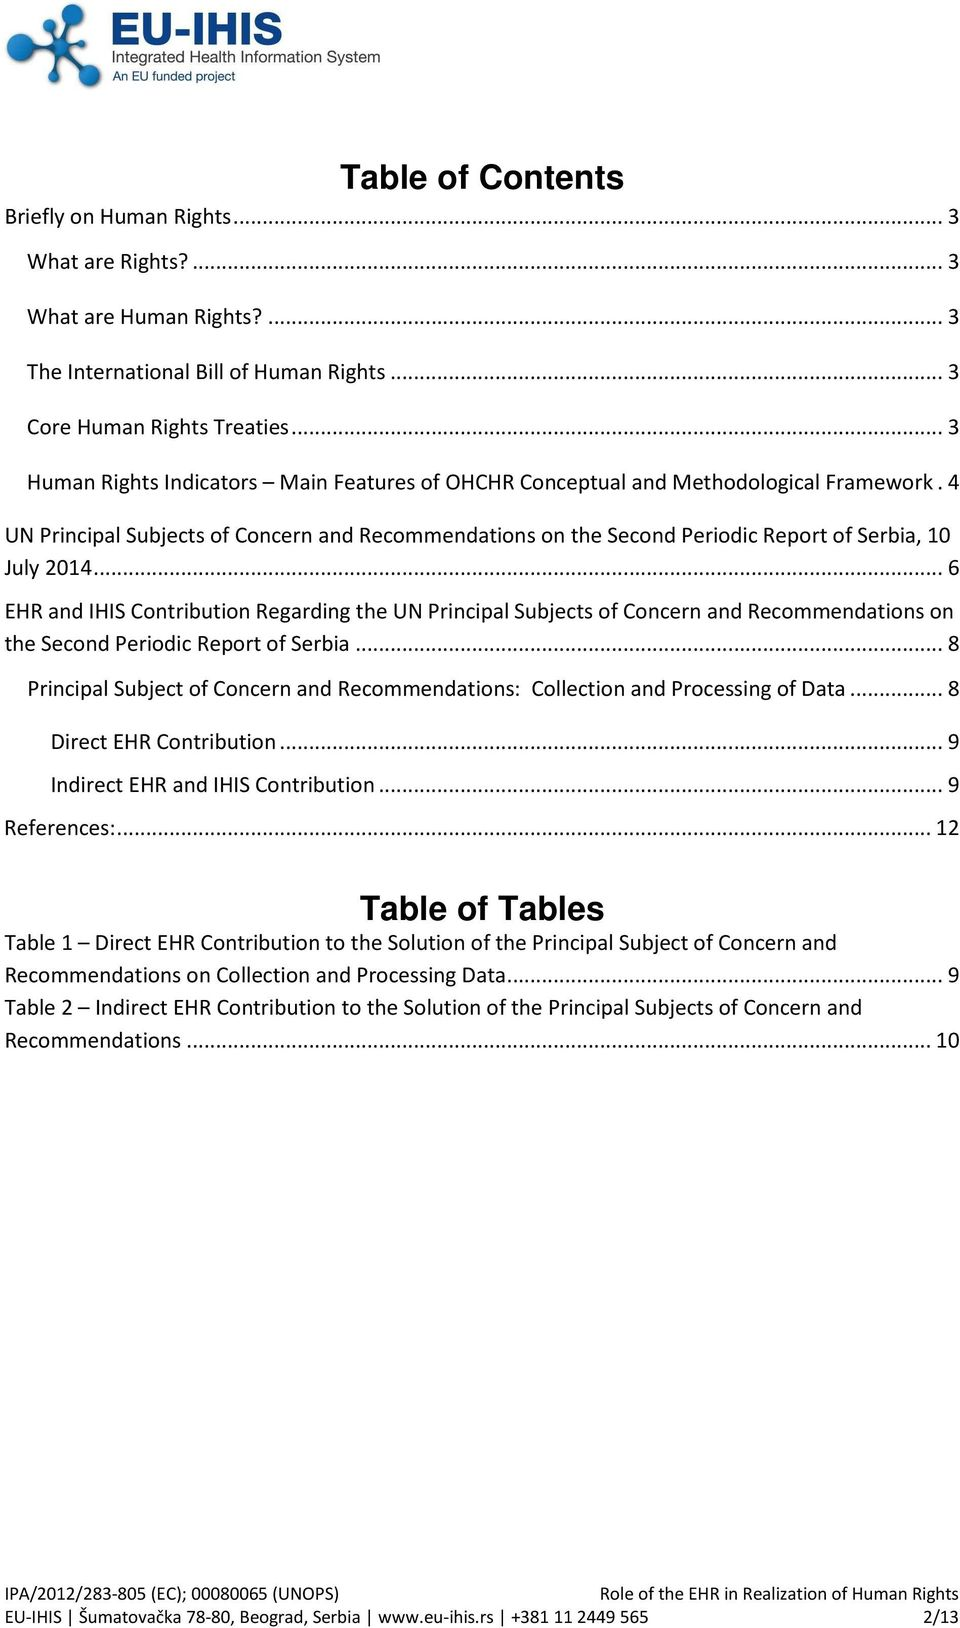 4 UN Principal Subjects of Concern and Recommendations on the Second Periodic Report of Serbia, 10 July 2014.